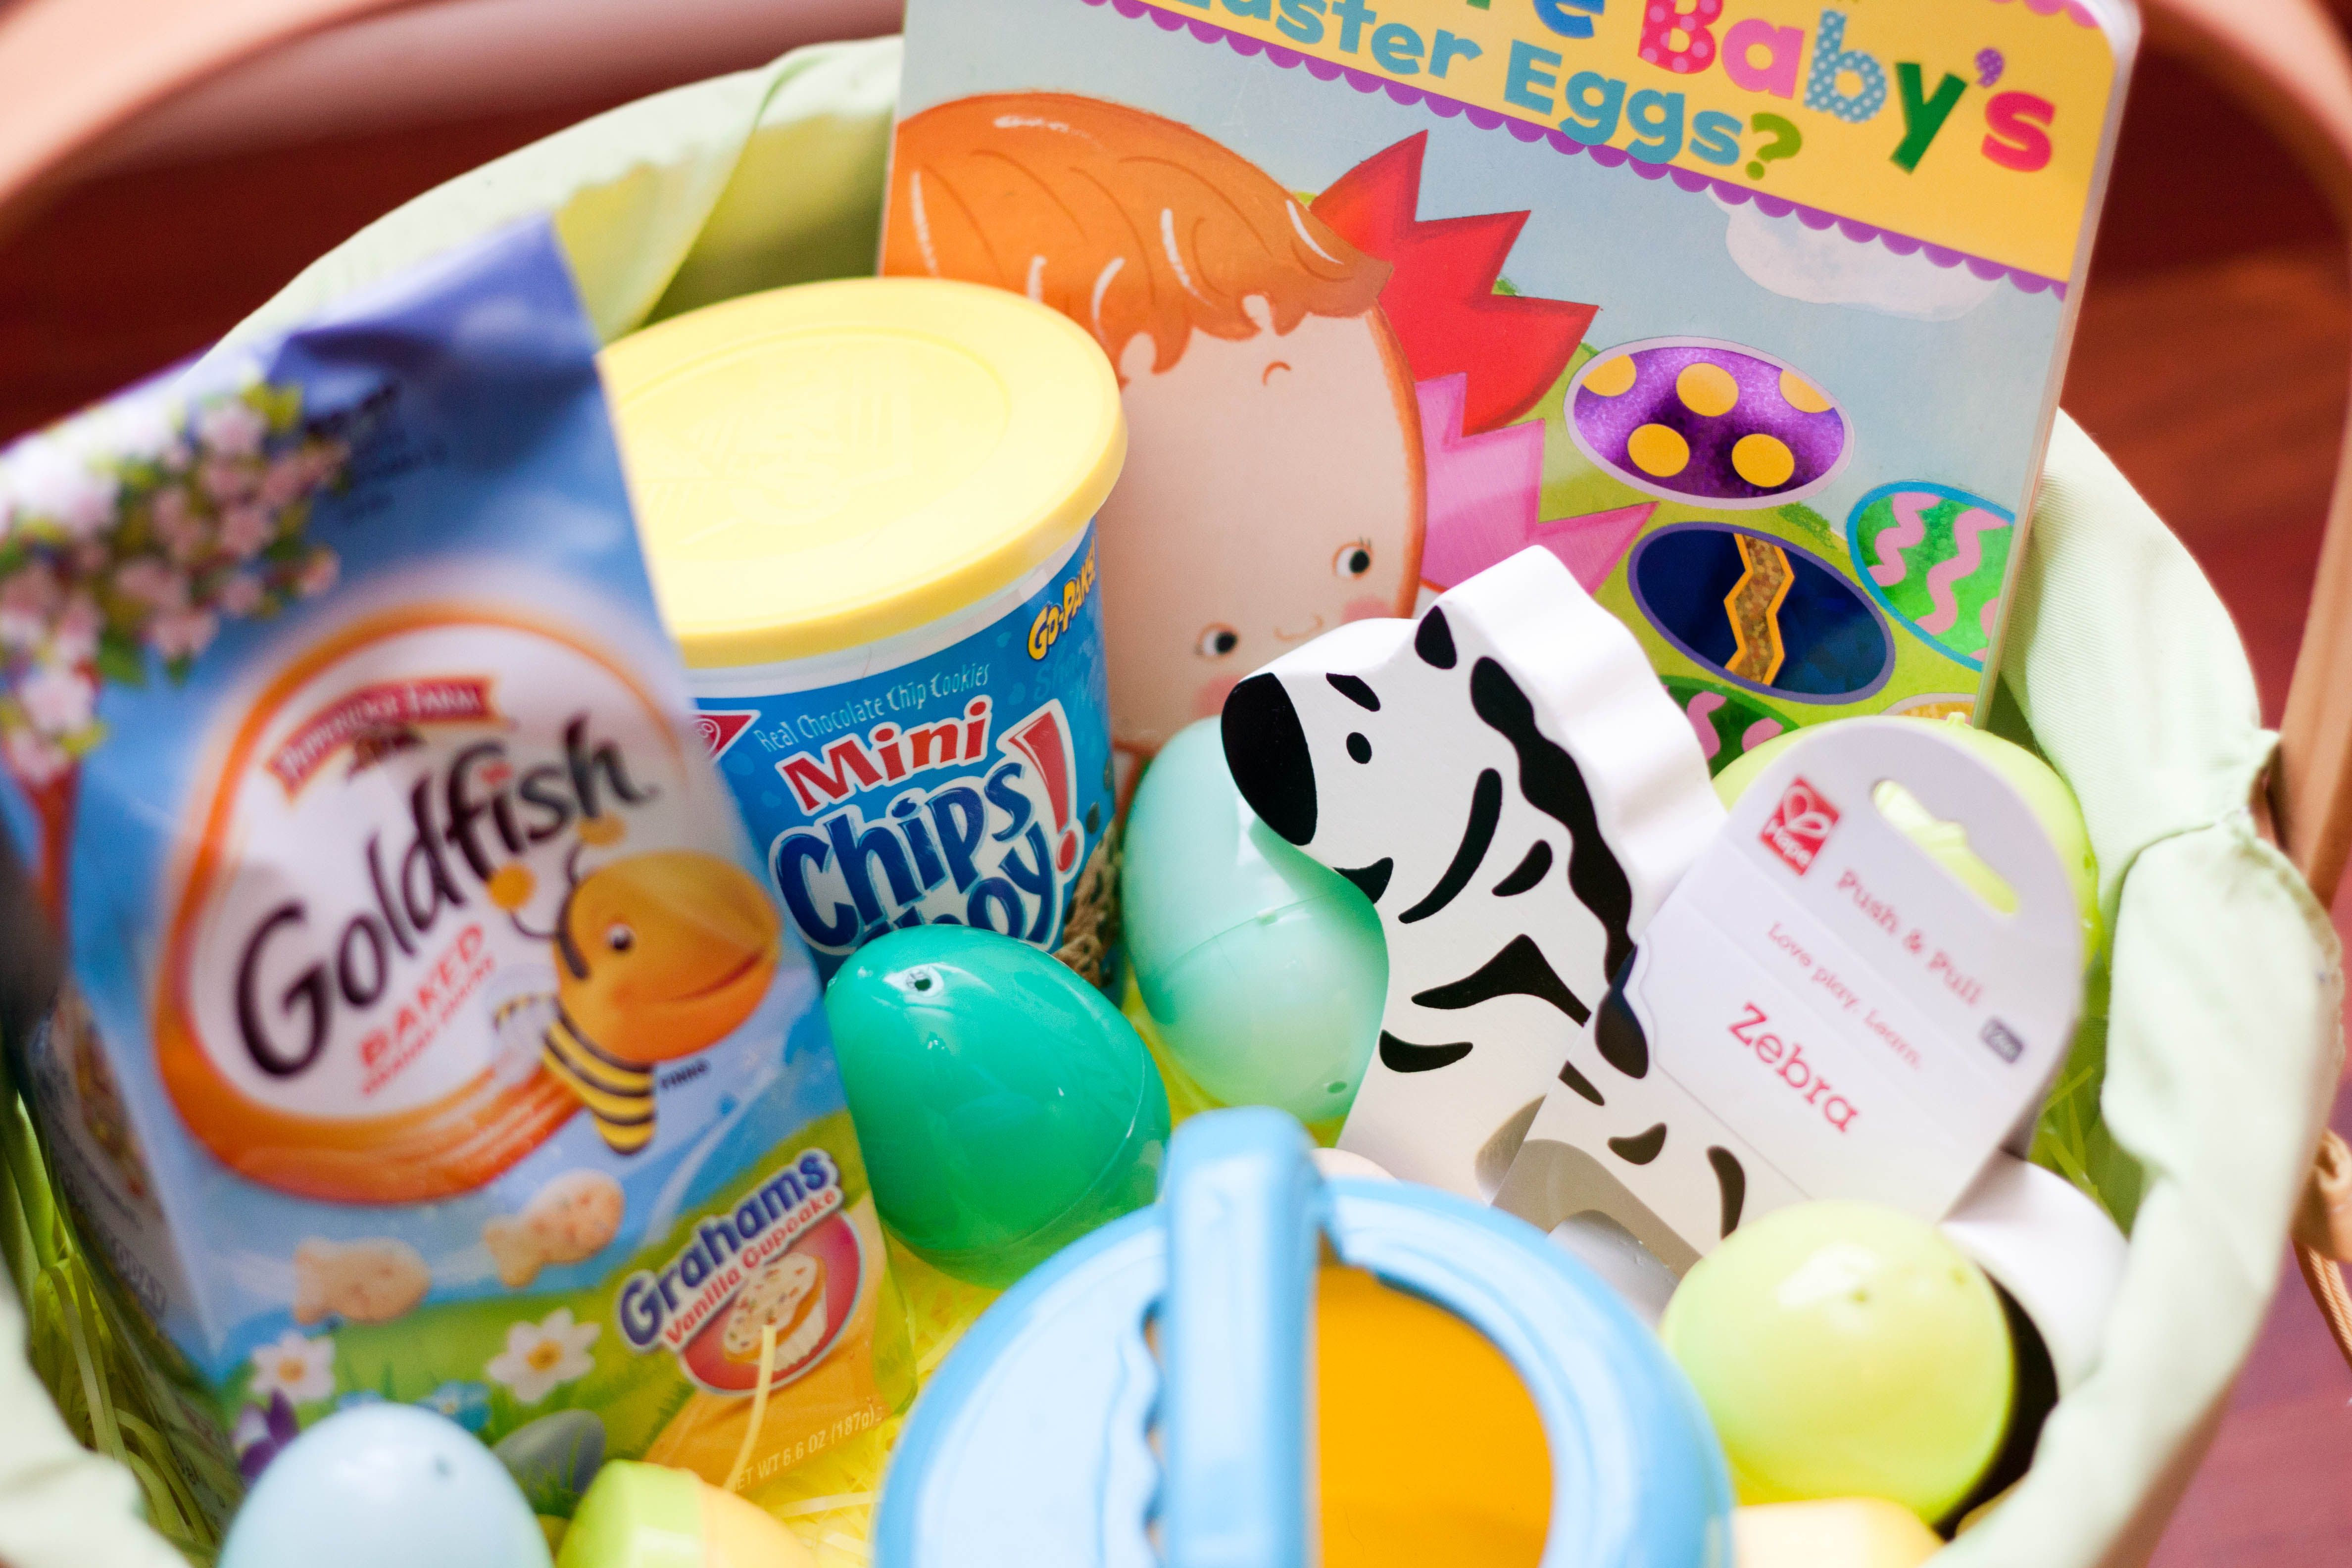 Easter basket ideas for a one year old great ideas pinterest easter basket ideas for a one year old negle Gallery